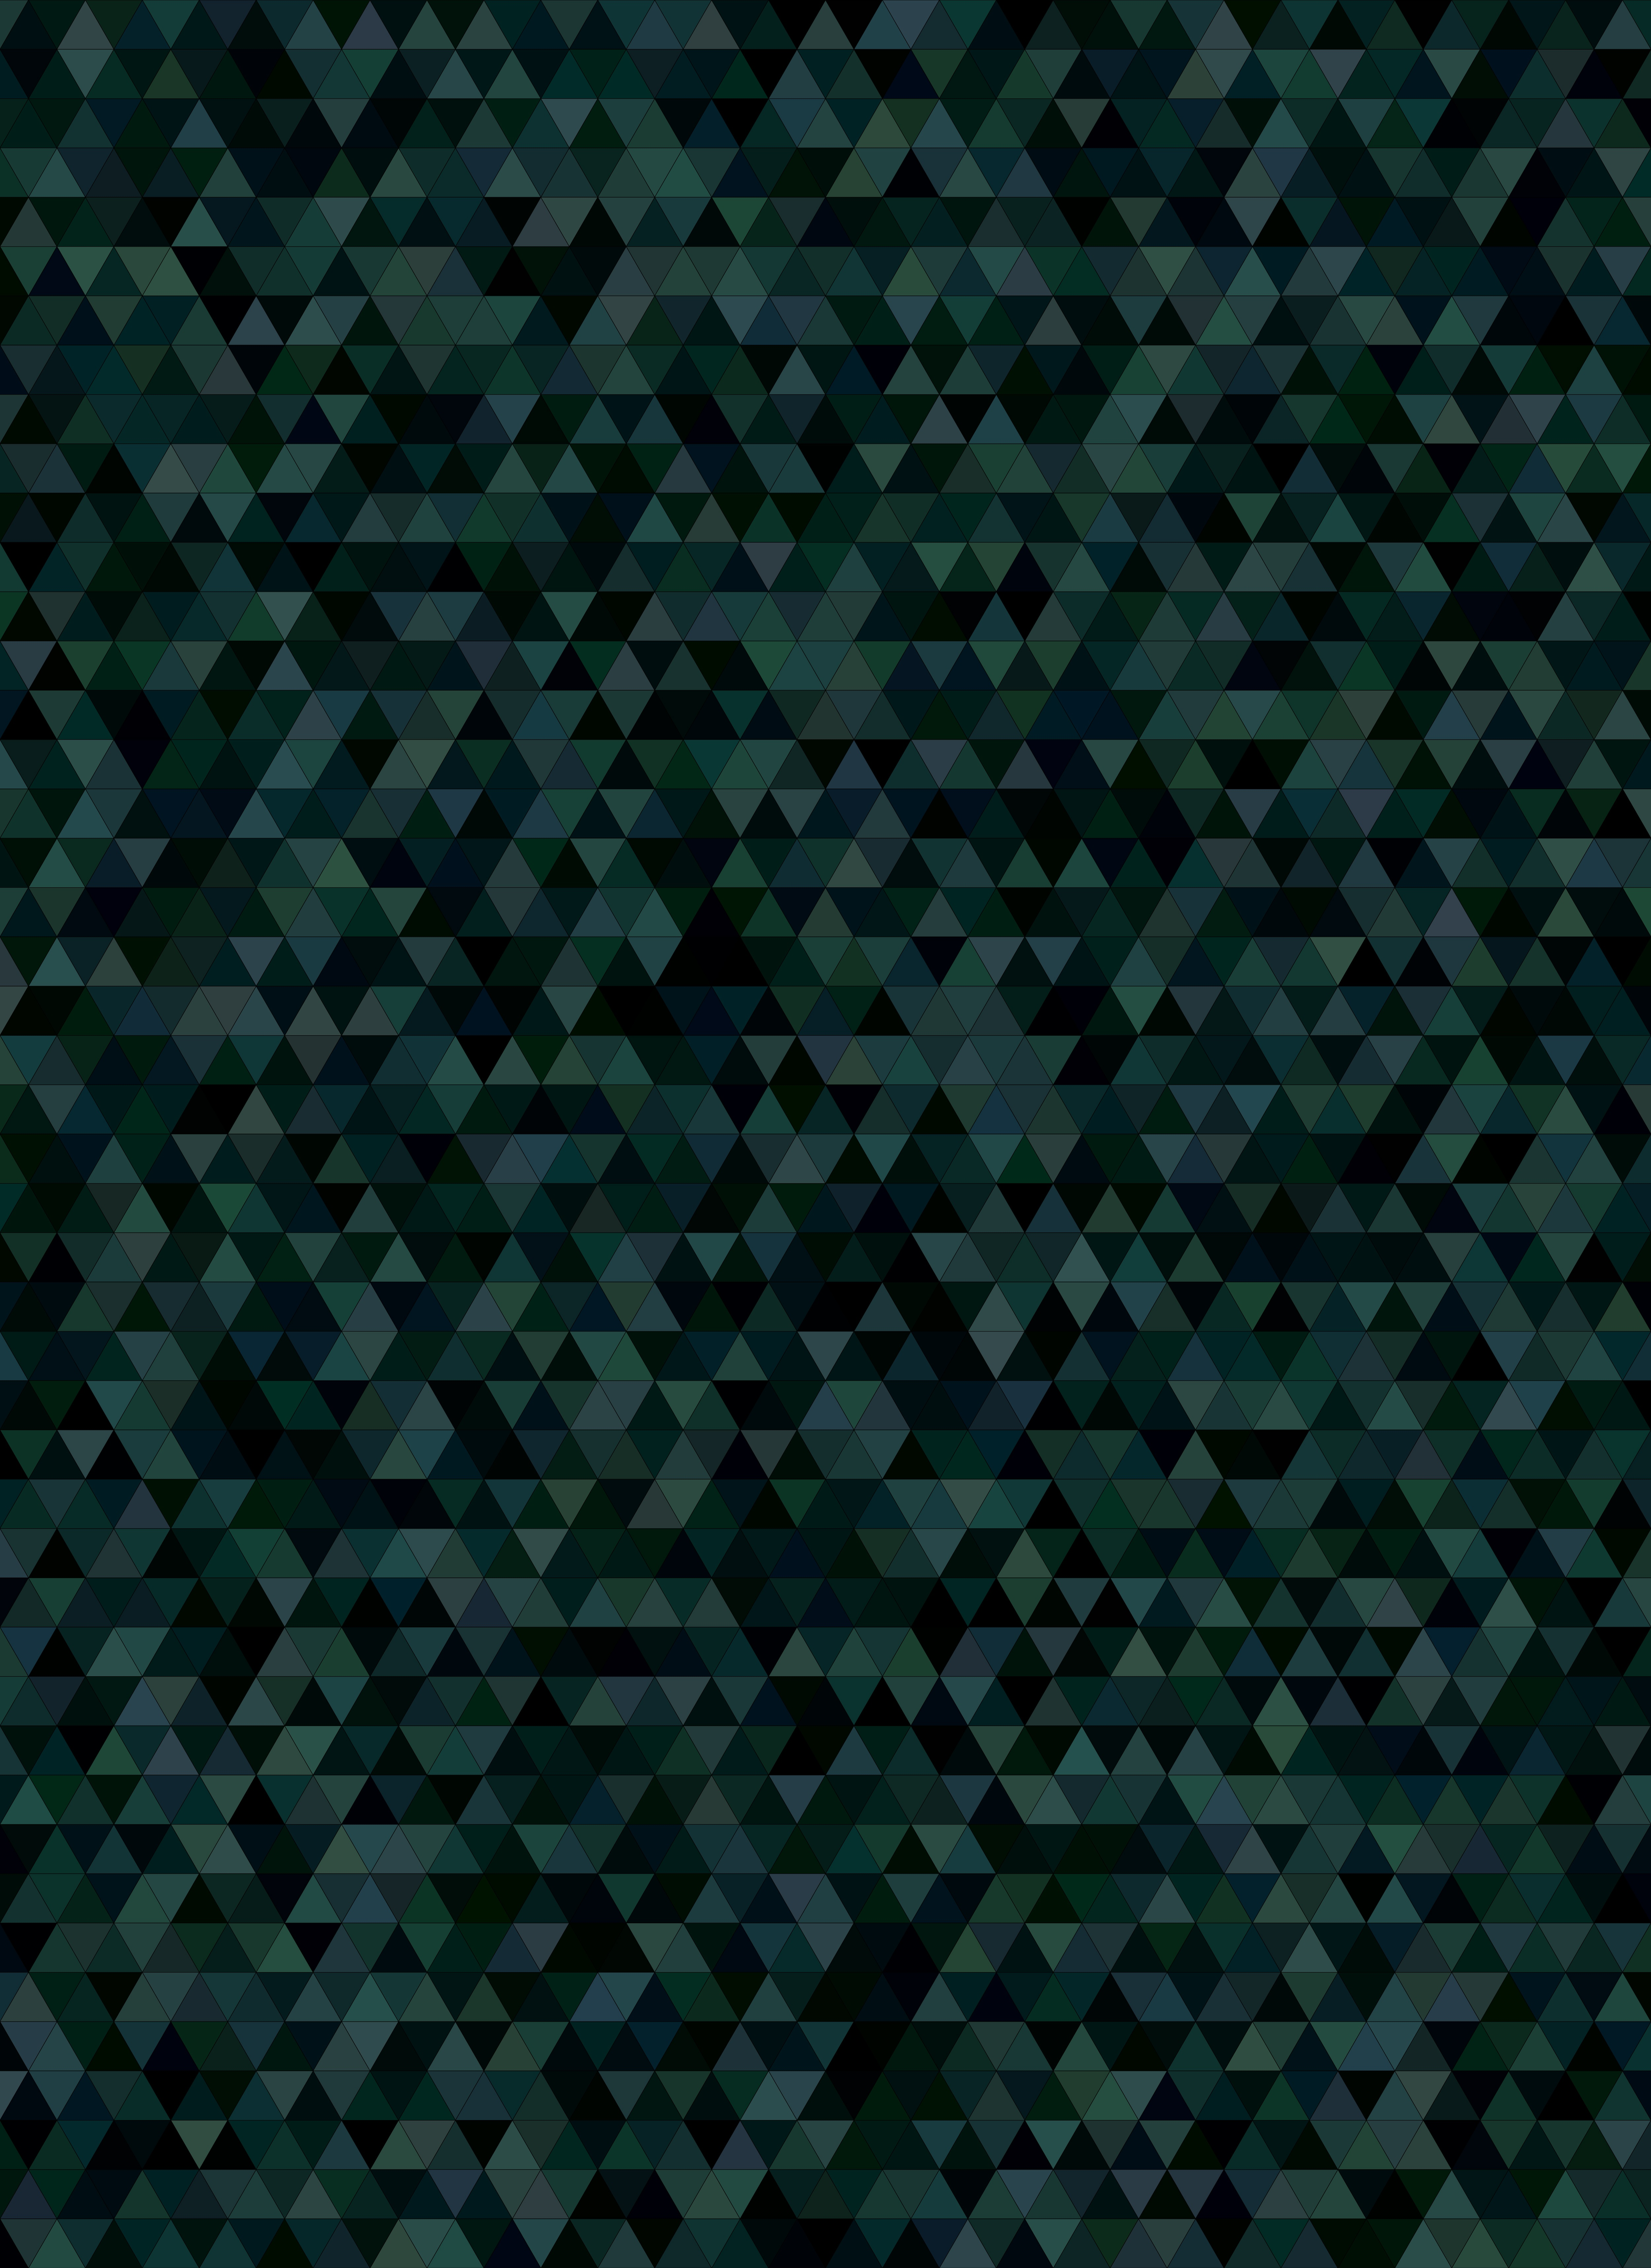 110987 download wallpaper Textures, Texture, Triangles, Mosaic, Dark screensavers and pictures for free